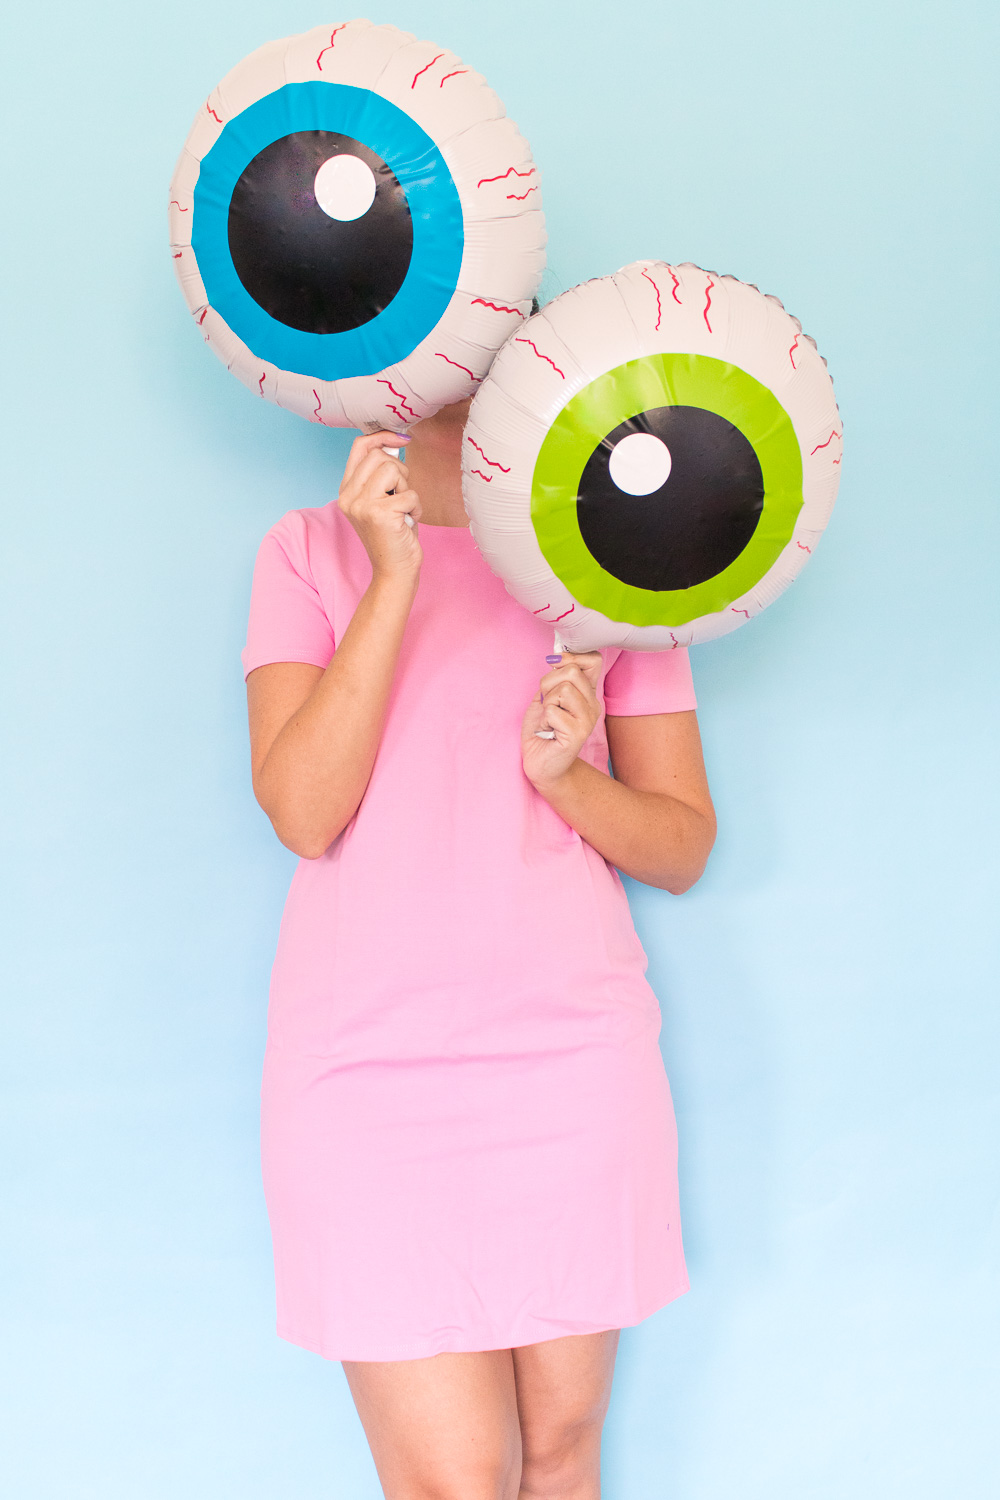 DIY Eyeball Balloons for Halloween | Club Crafted